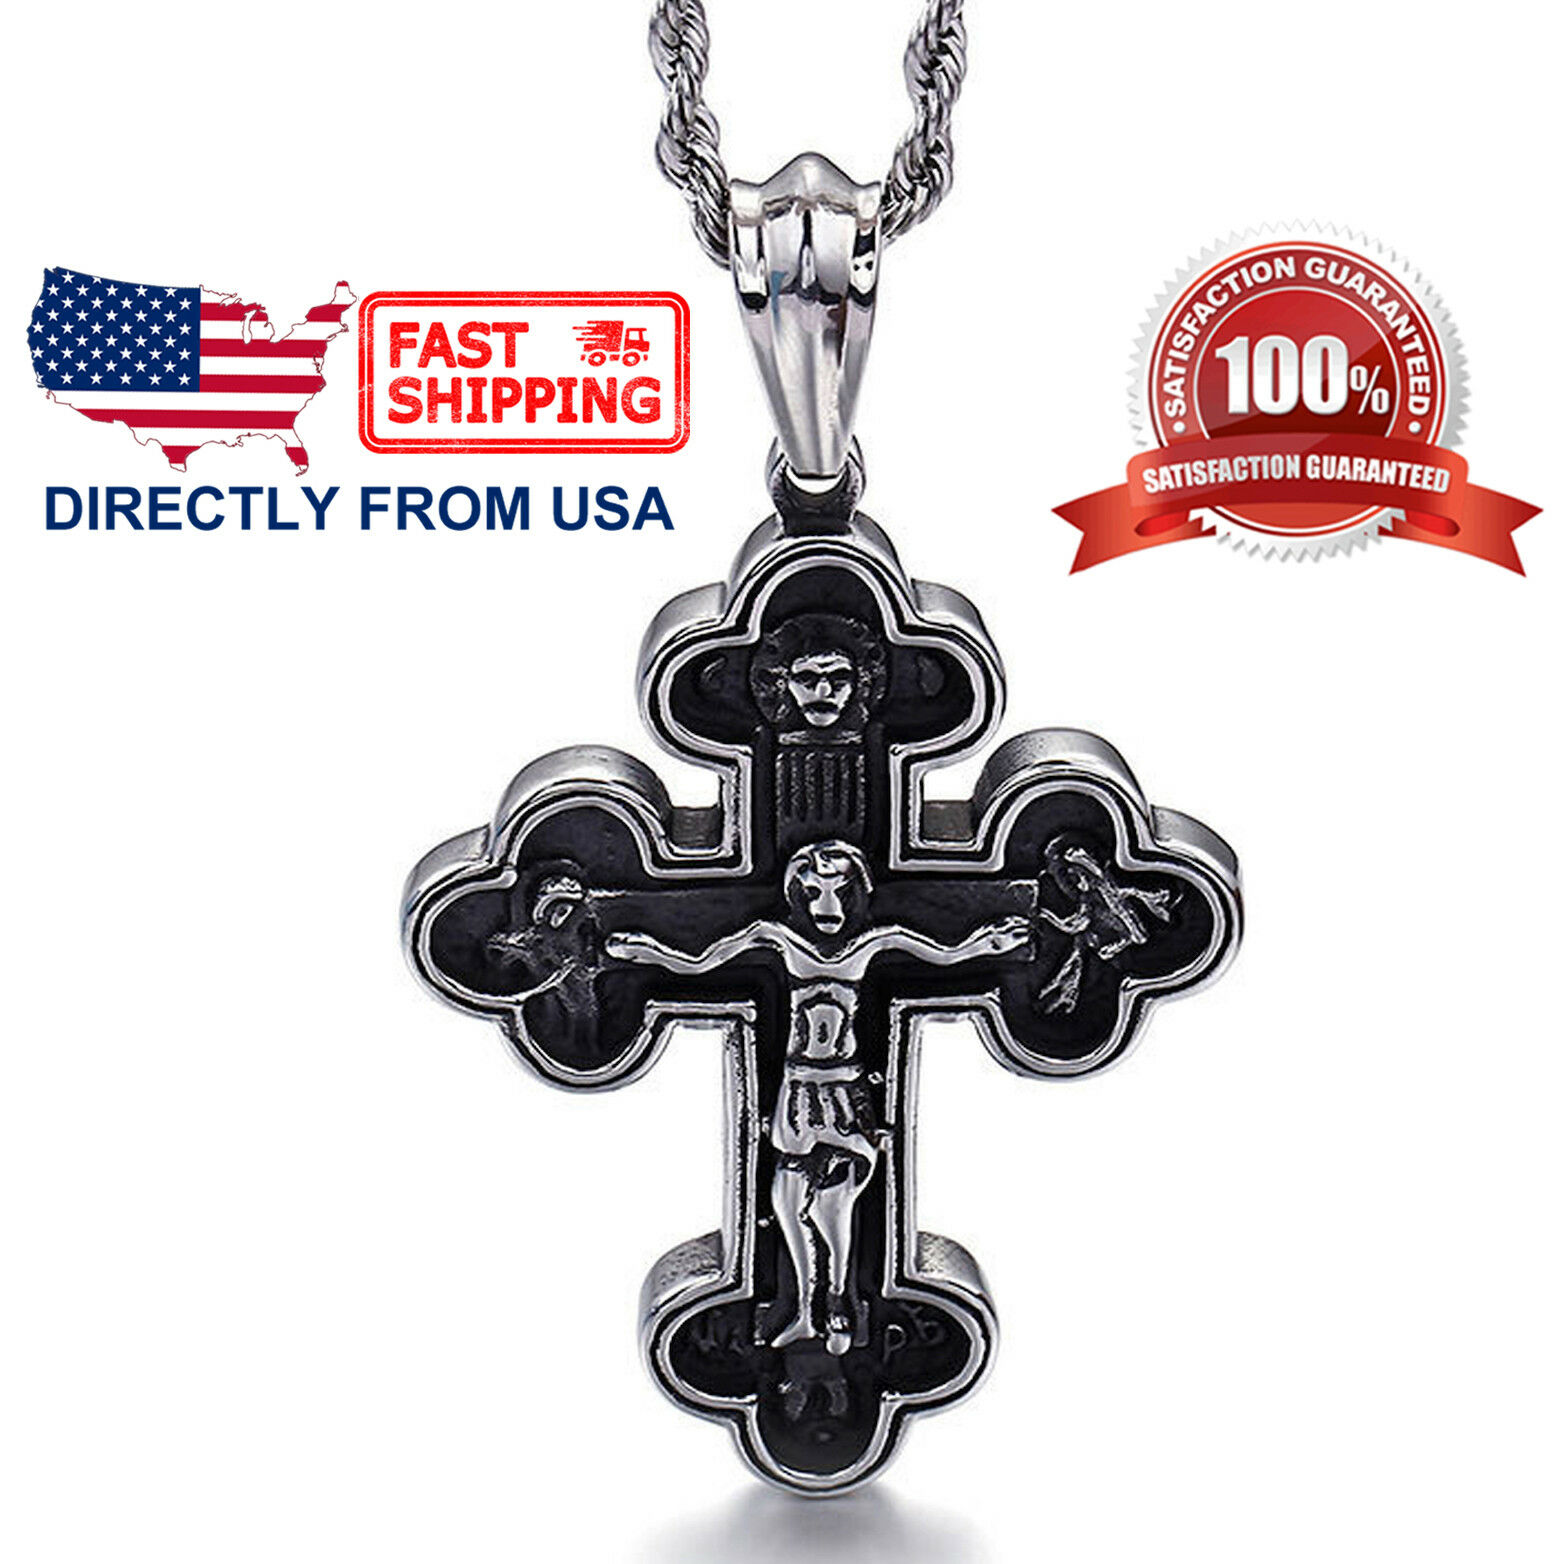 Men's Large Jesus Christ Crucifixion Cross Pendant Necklace in Stainless Steel Chains, Necklaces & Pendants